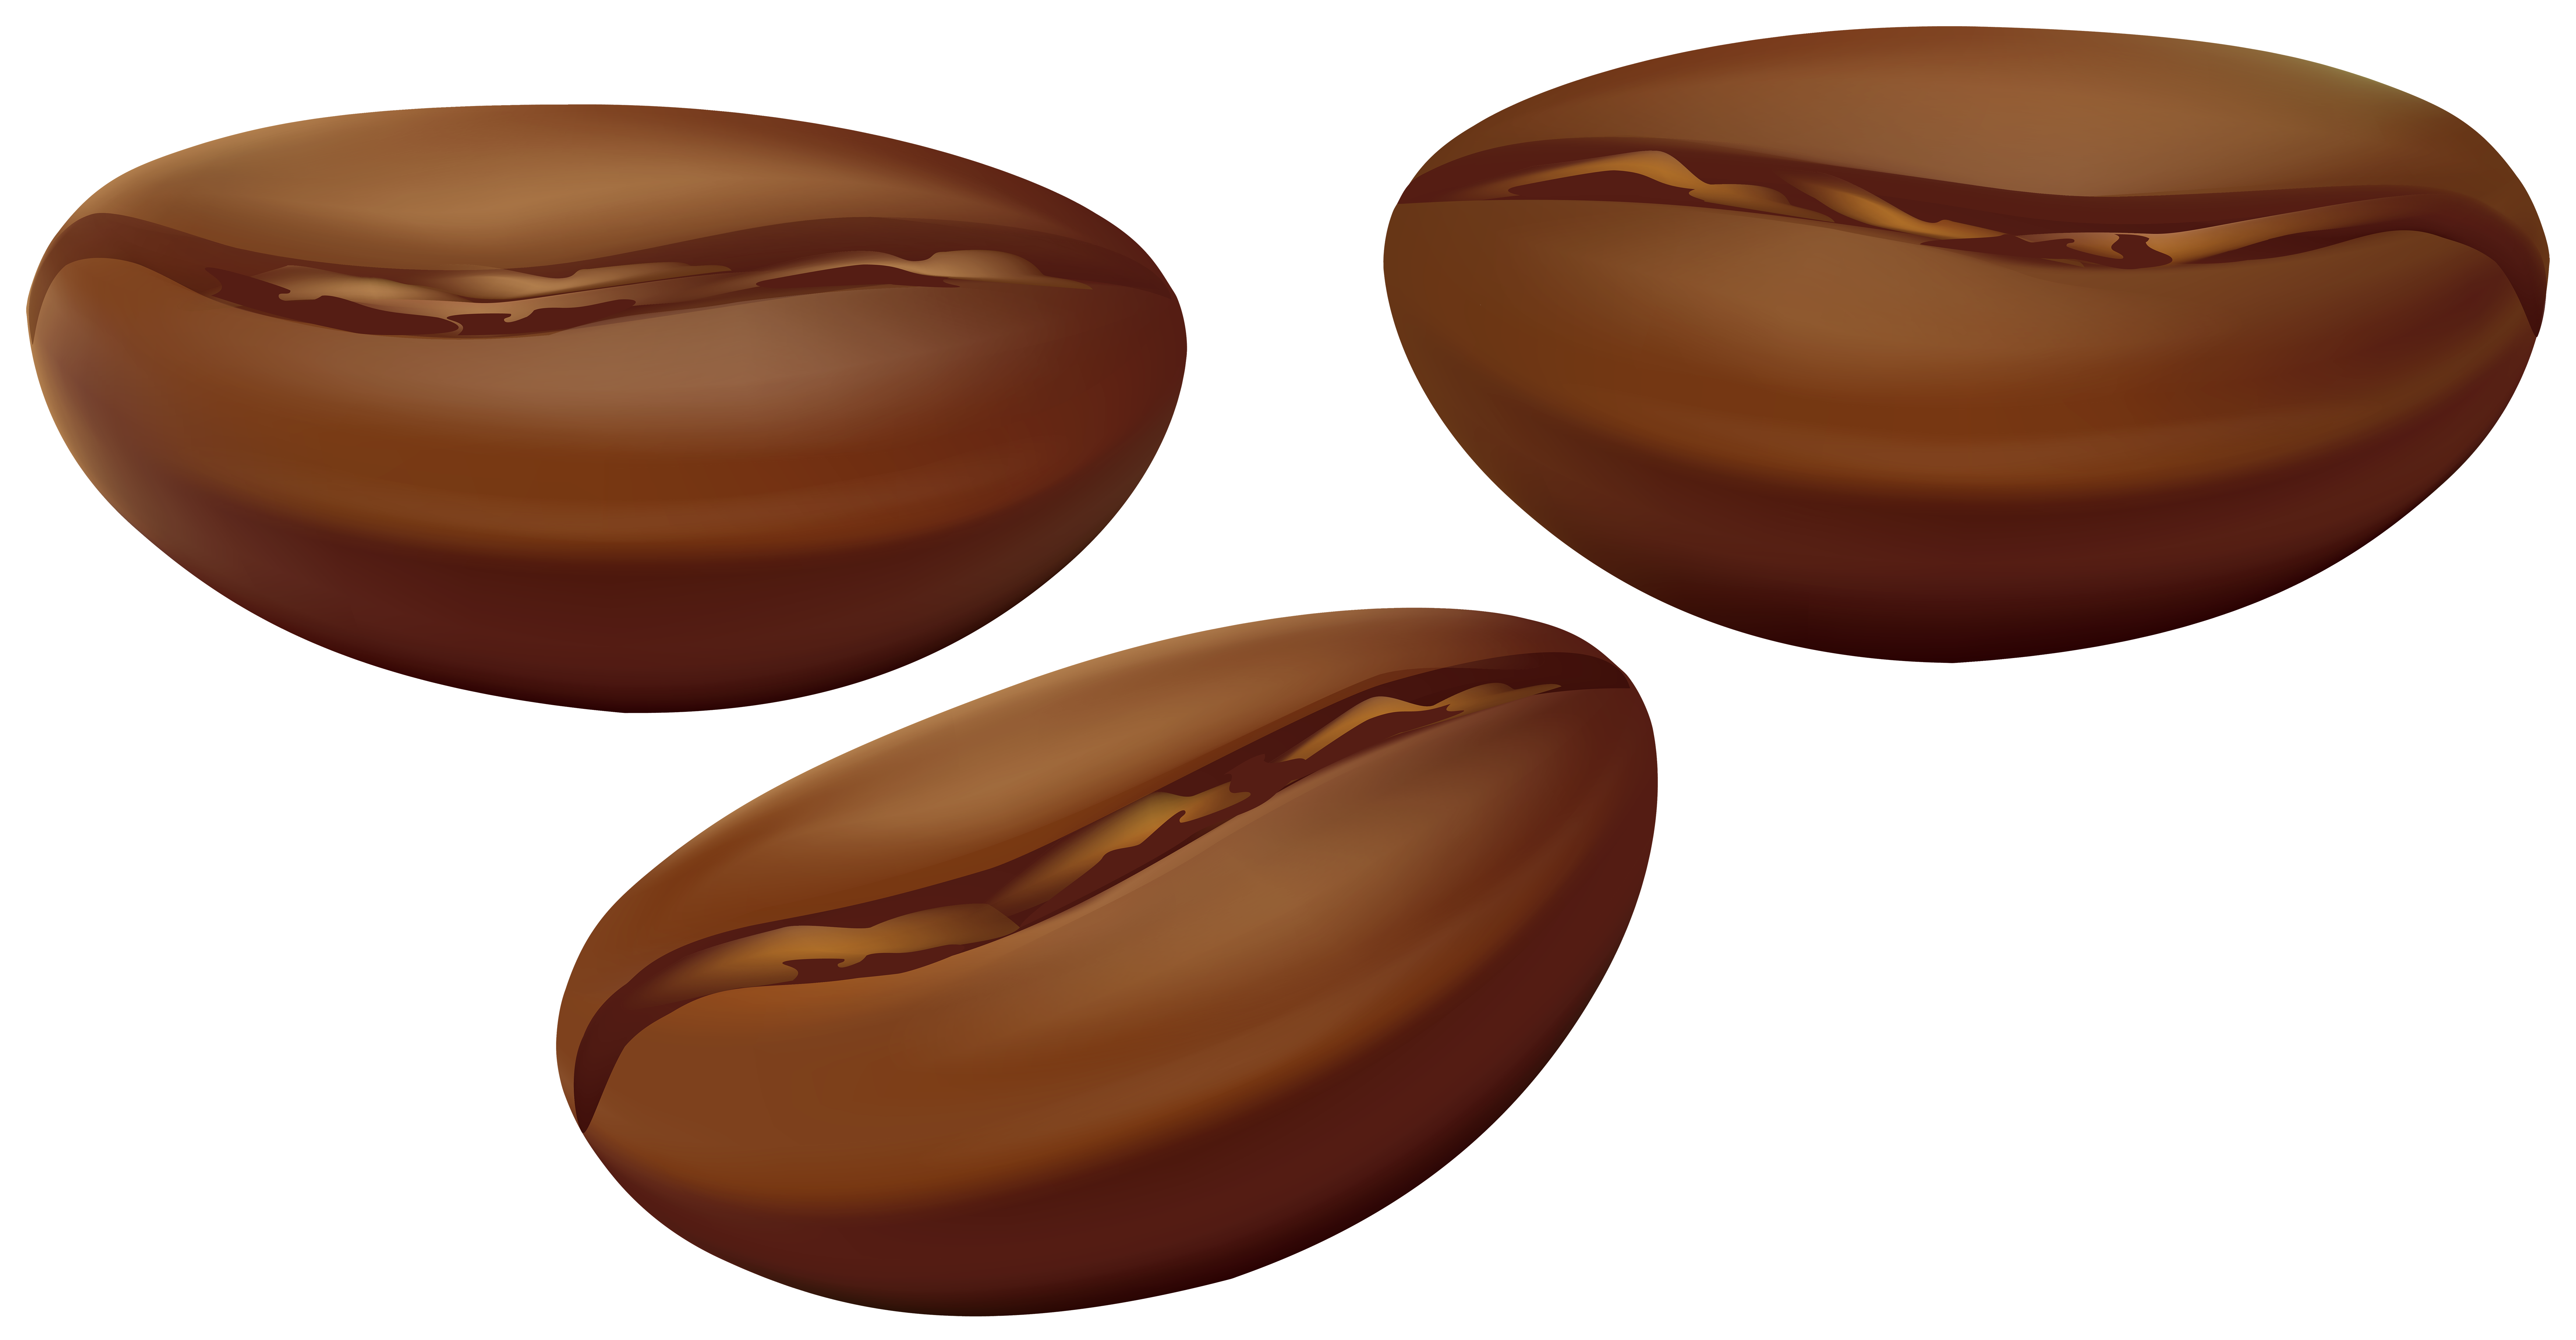 Bean clipart. Coffee beans transparent png png download